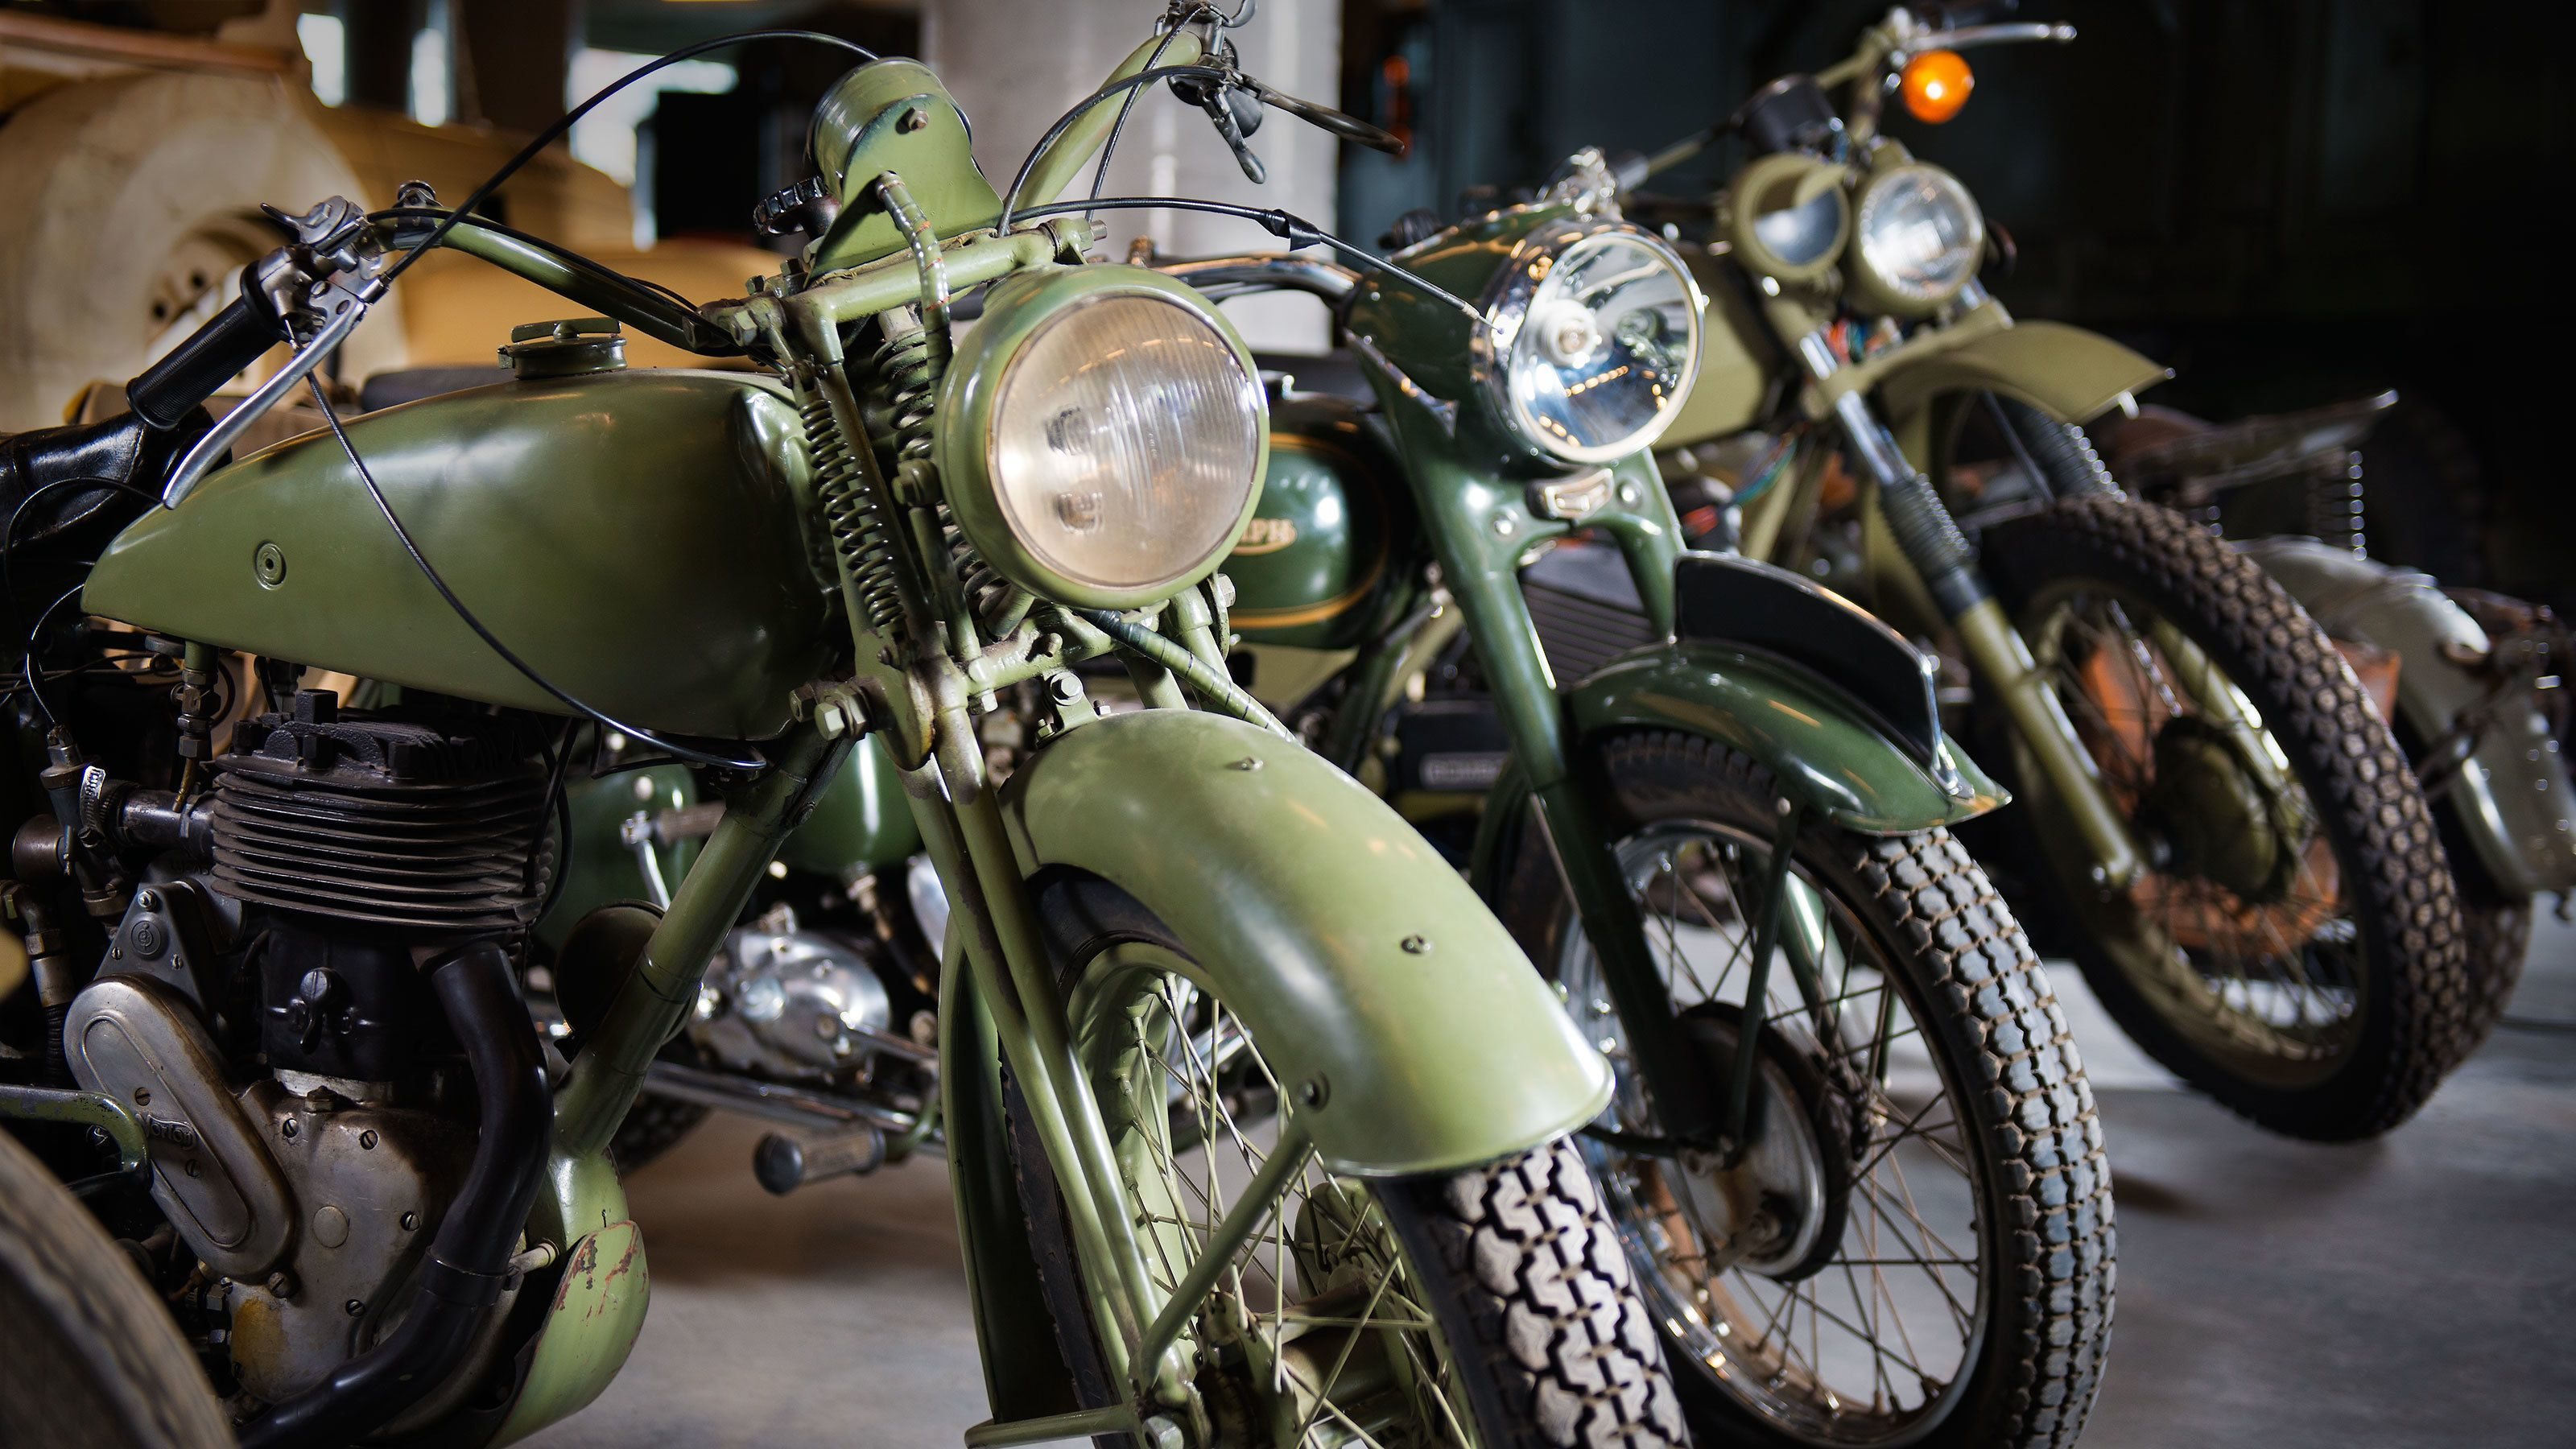 Vintage military motorcycles at the Canadian War Museum in Ottawa